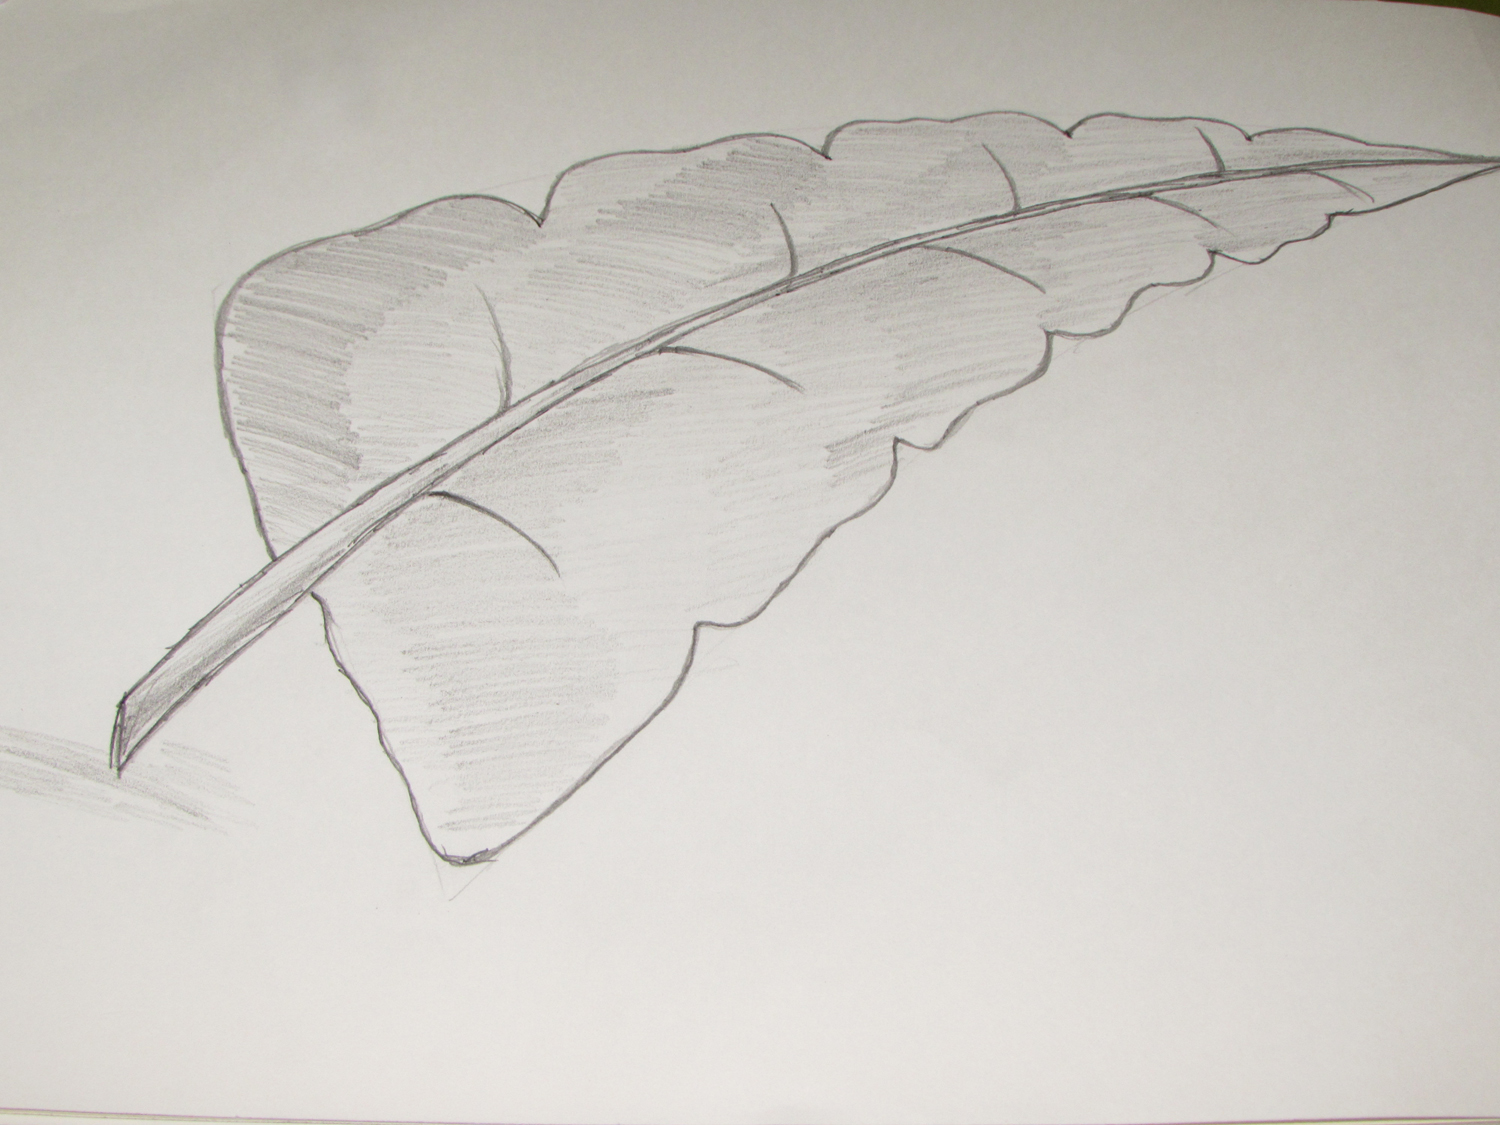 How to draw or sketch of banana leaf using pencil